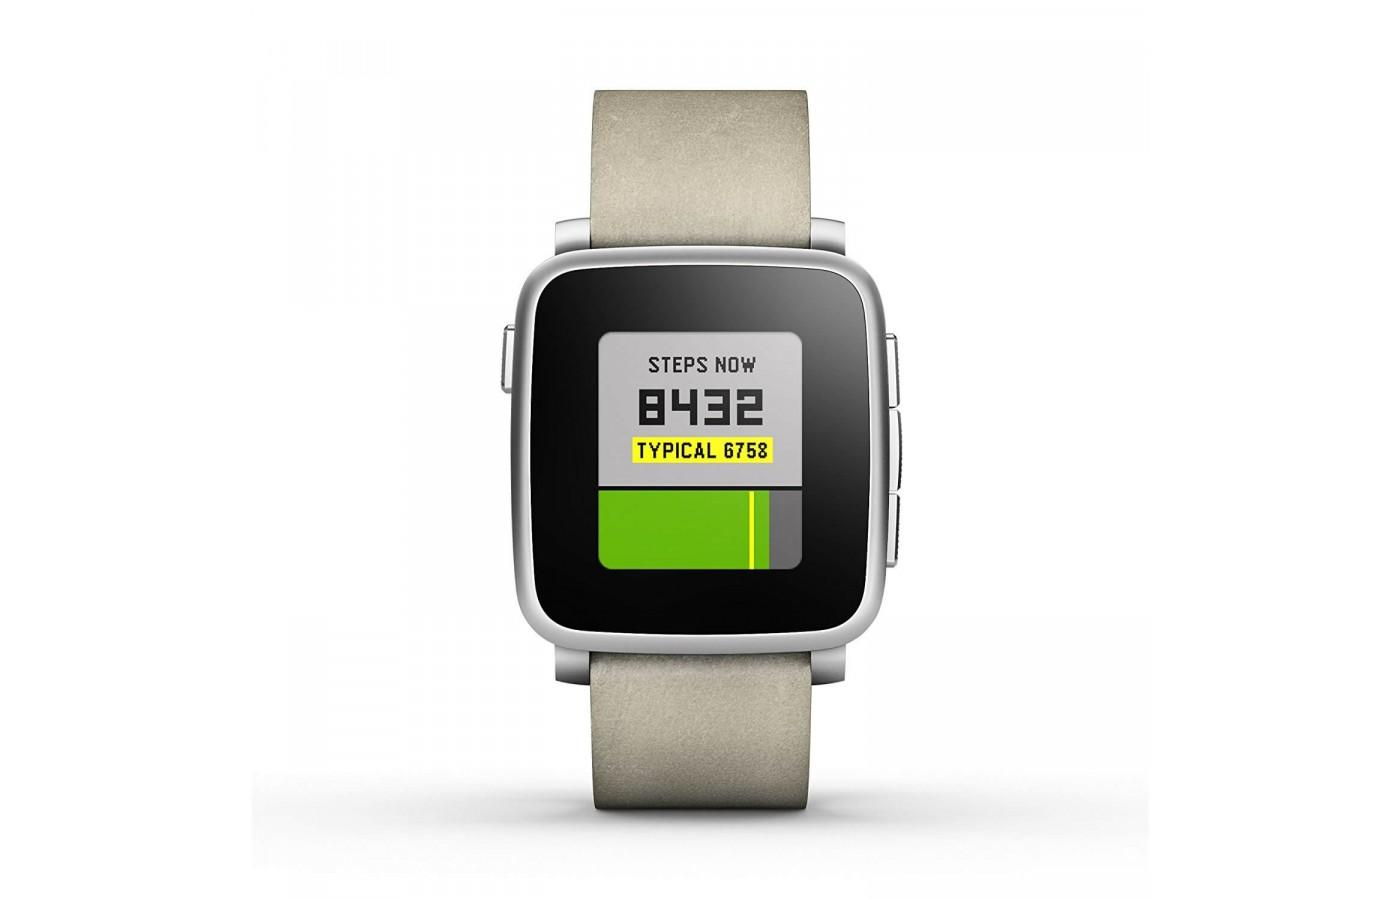 The Pebble Time Steel features a metal bezel around the display.